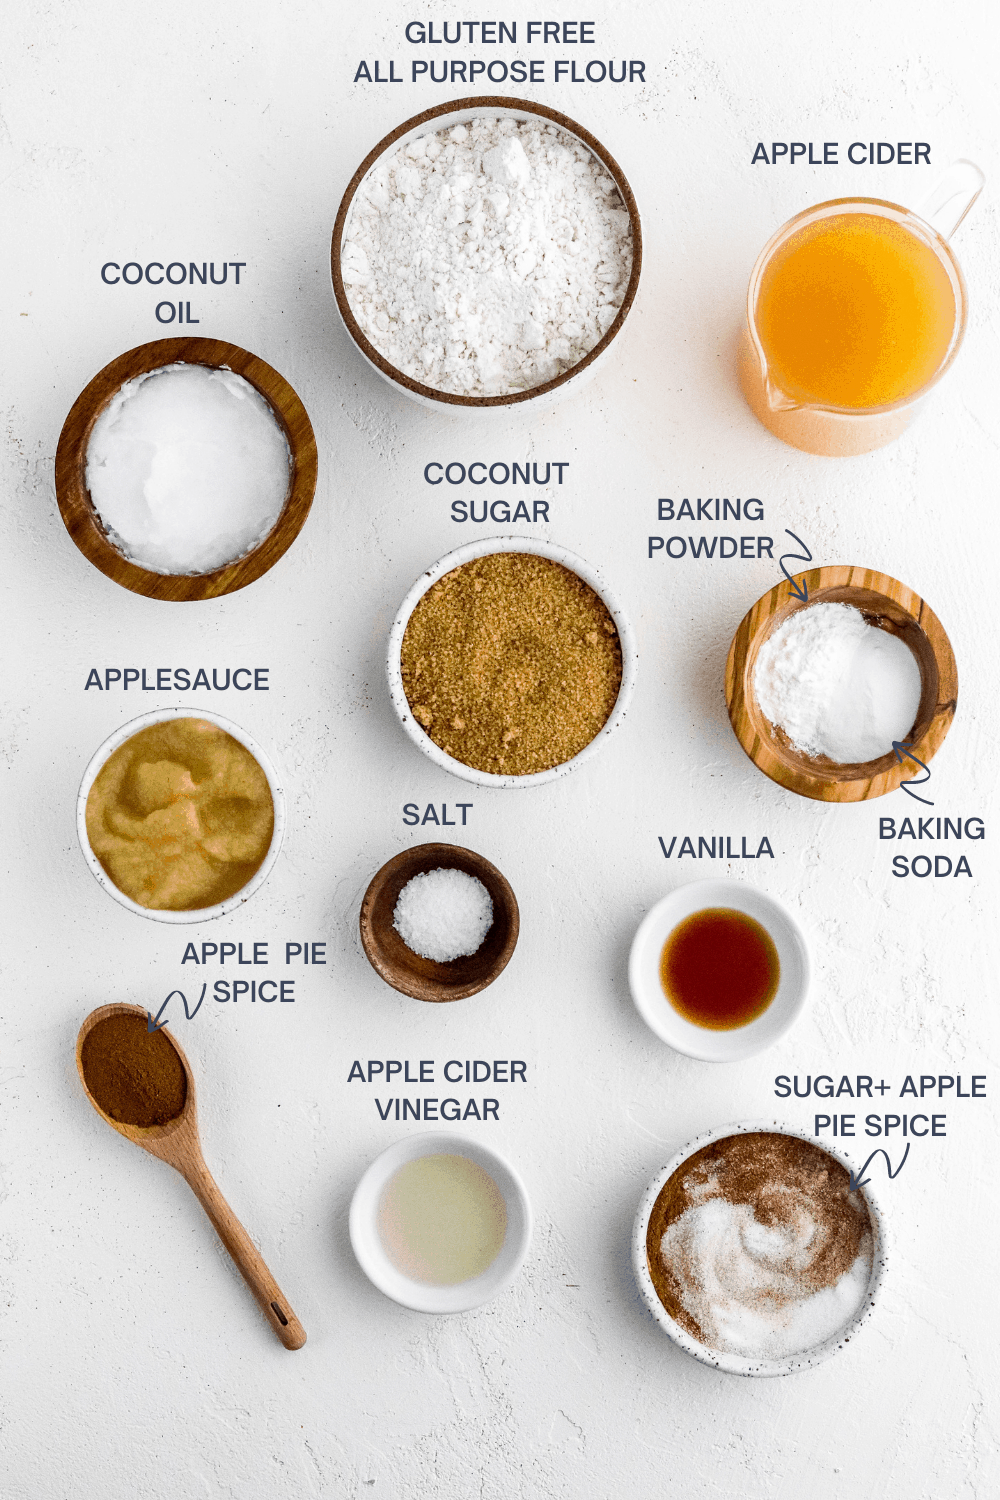 Round brown bowl with flour in it with a glass pitcher of cider and a brown bowl of coconut oil next to it with bowls with coconut sugar, baking powder, baking soda, salt, vanilla. apple cider vinegar and sugar in front of it.